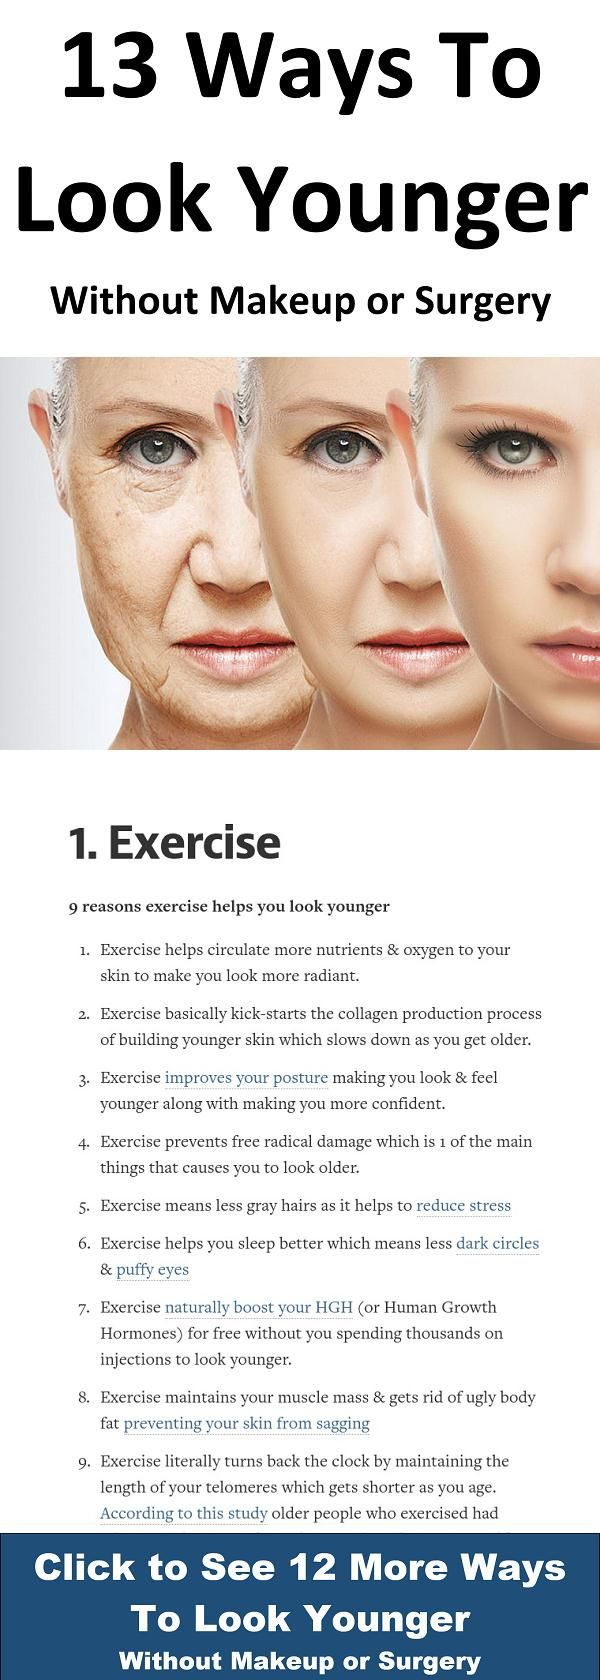 11 Ways To Look Younger Without Makeup or Surgery  Anti aging